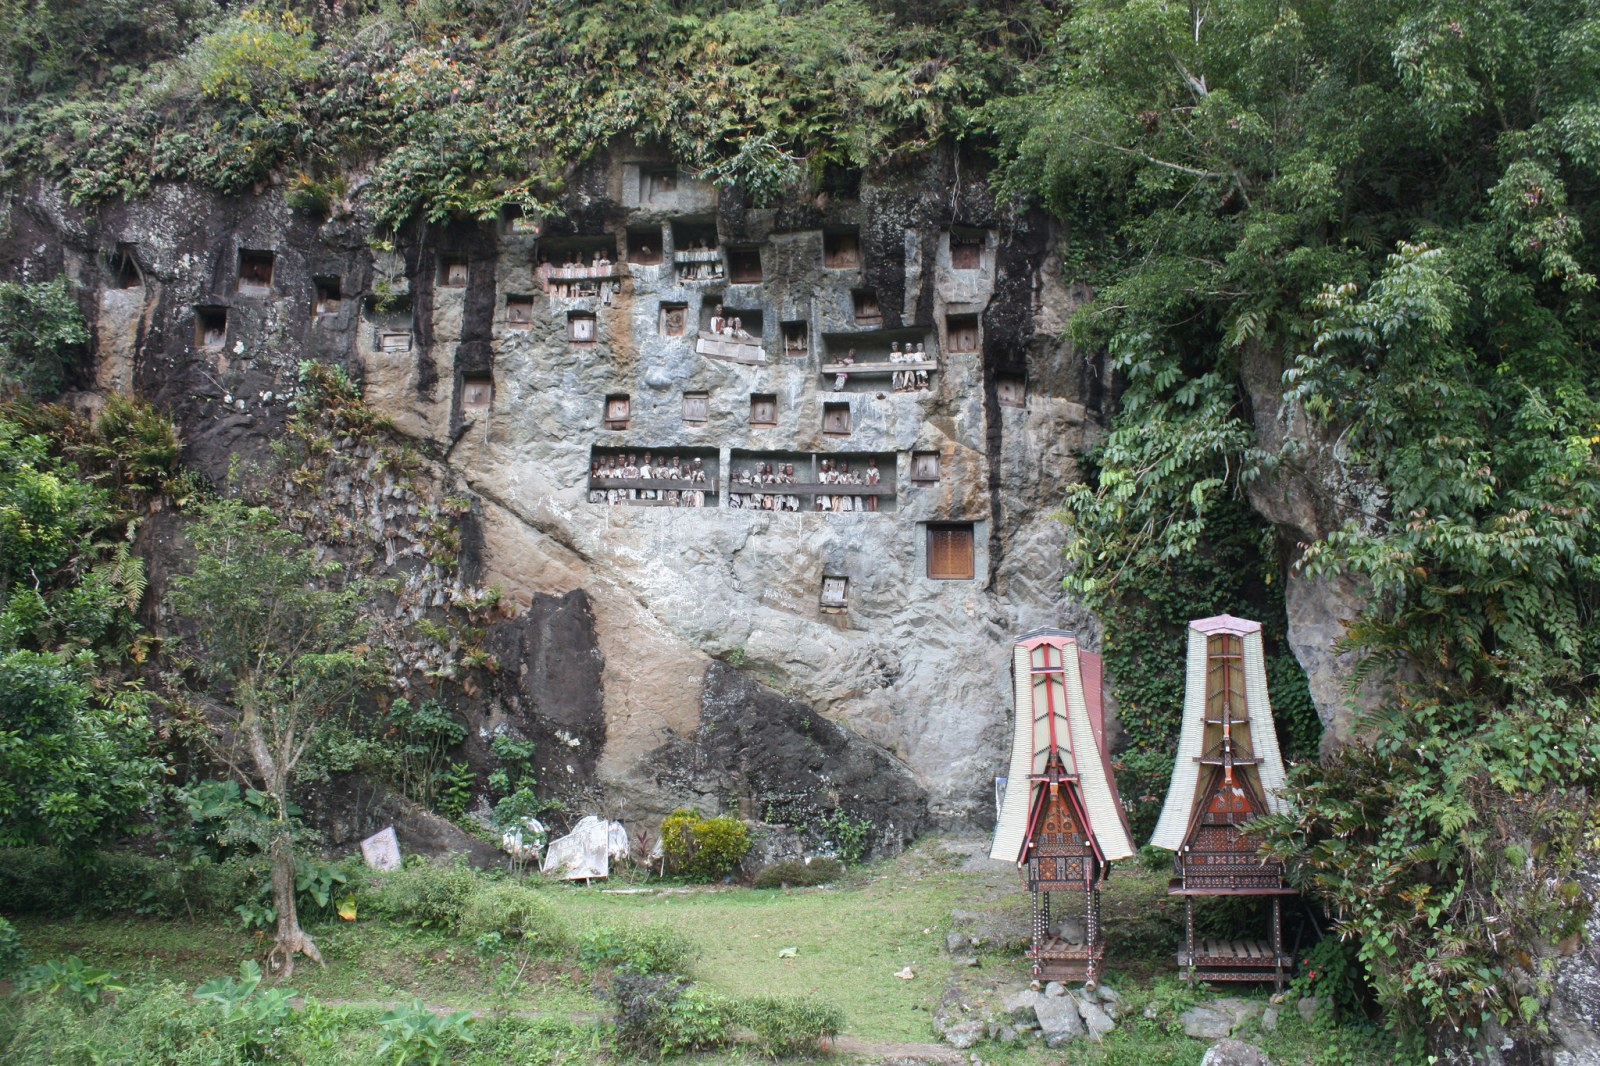 In Tana Toraja the deceased are buried on cliffs following elaborate ceremonies and rituals